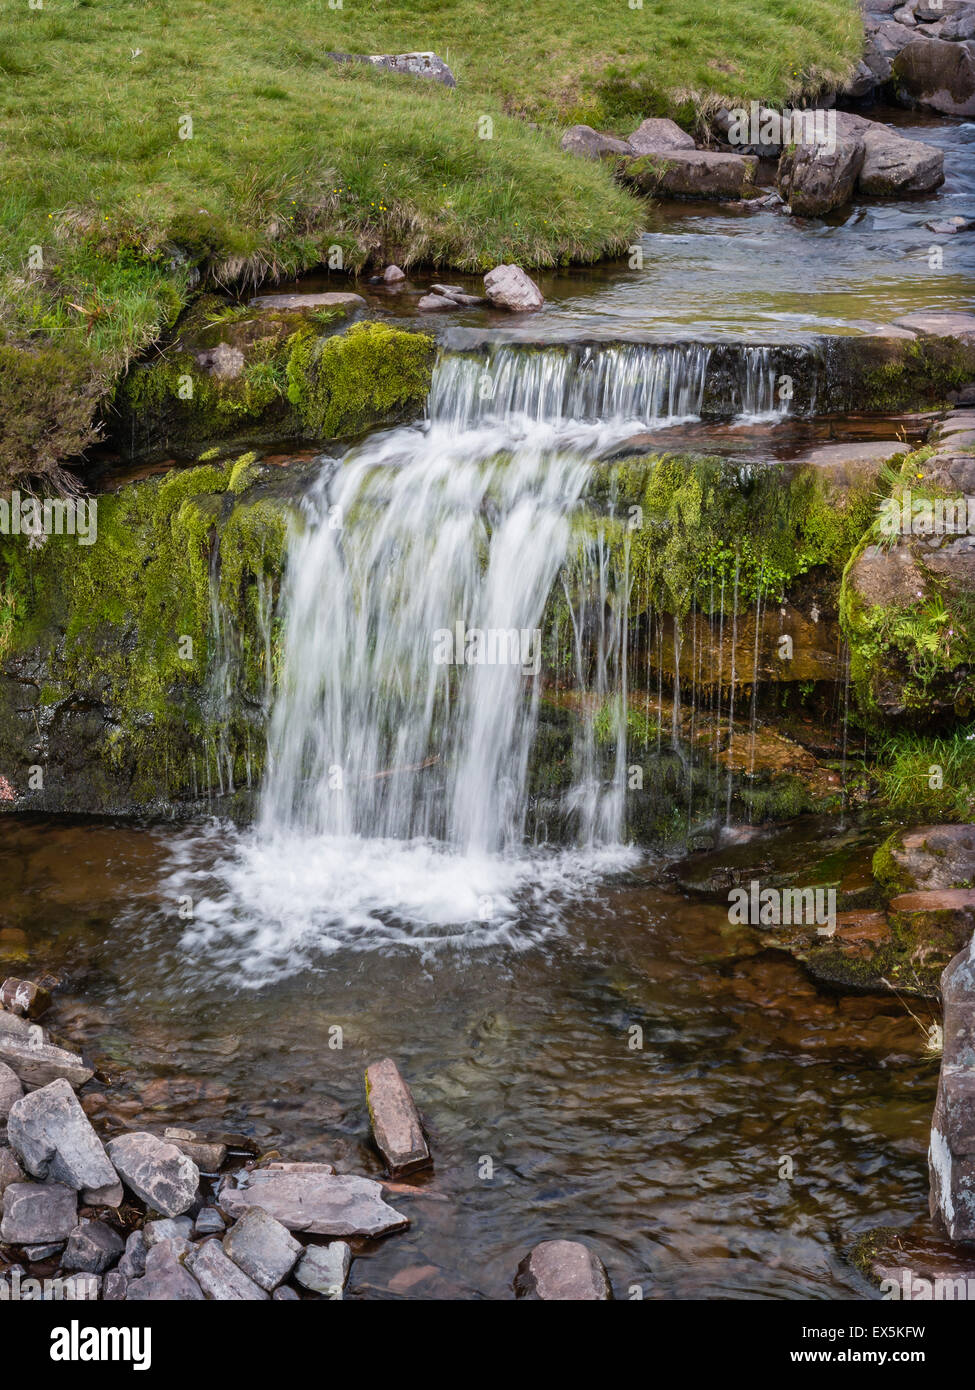 Waterfall at Pont ar DAF in The Brecon Beacons, Powys, South Wakes, UK - Stock Image